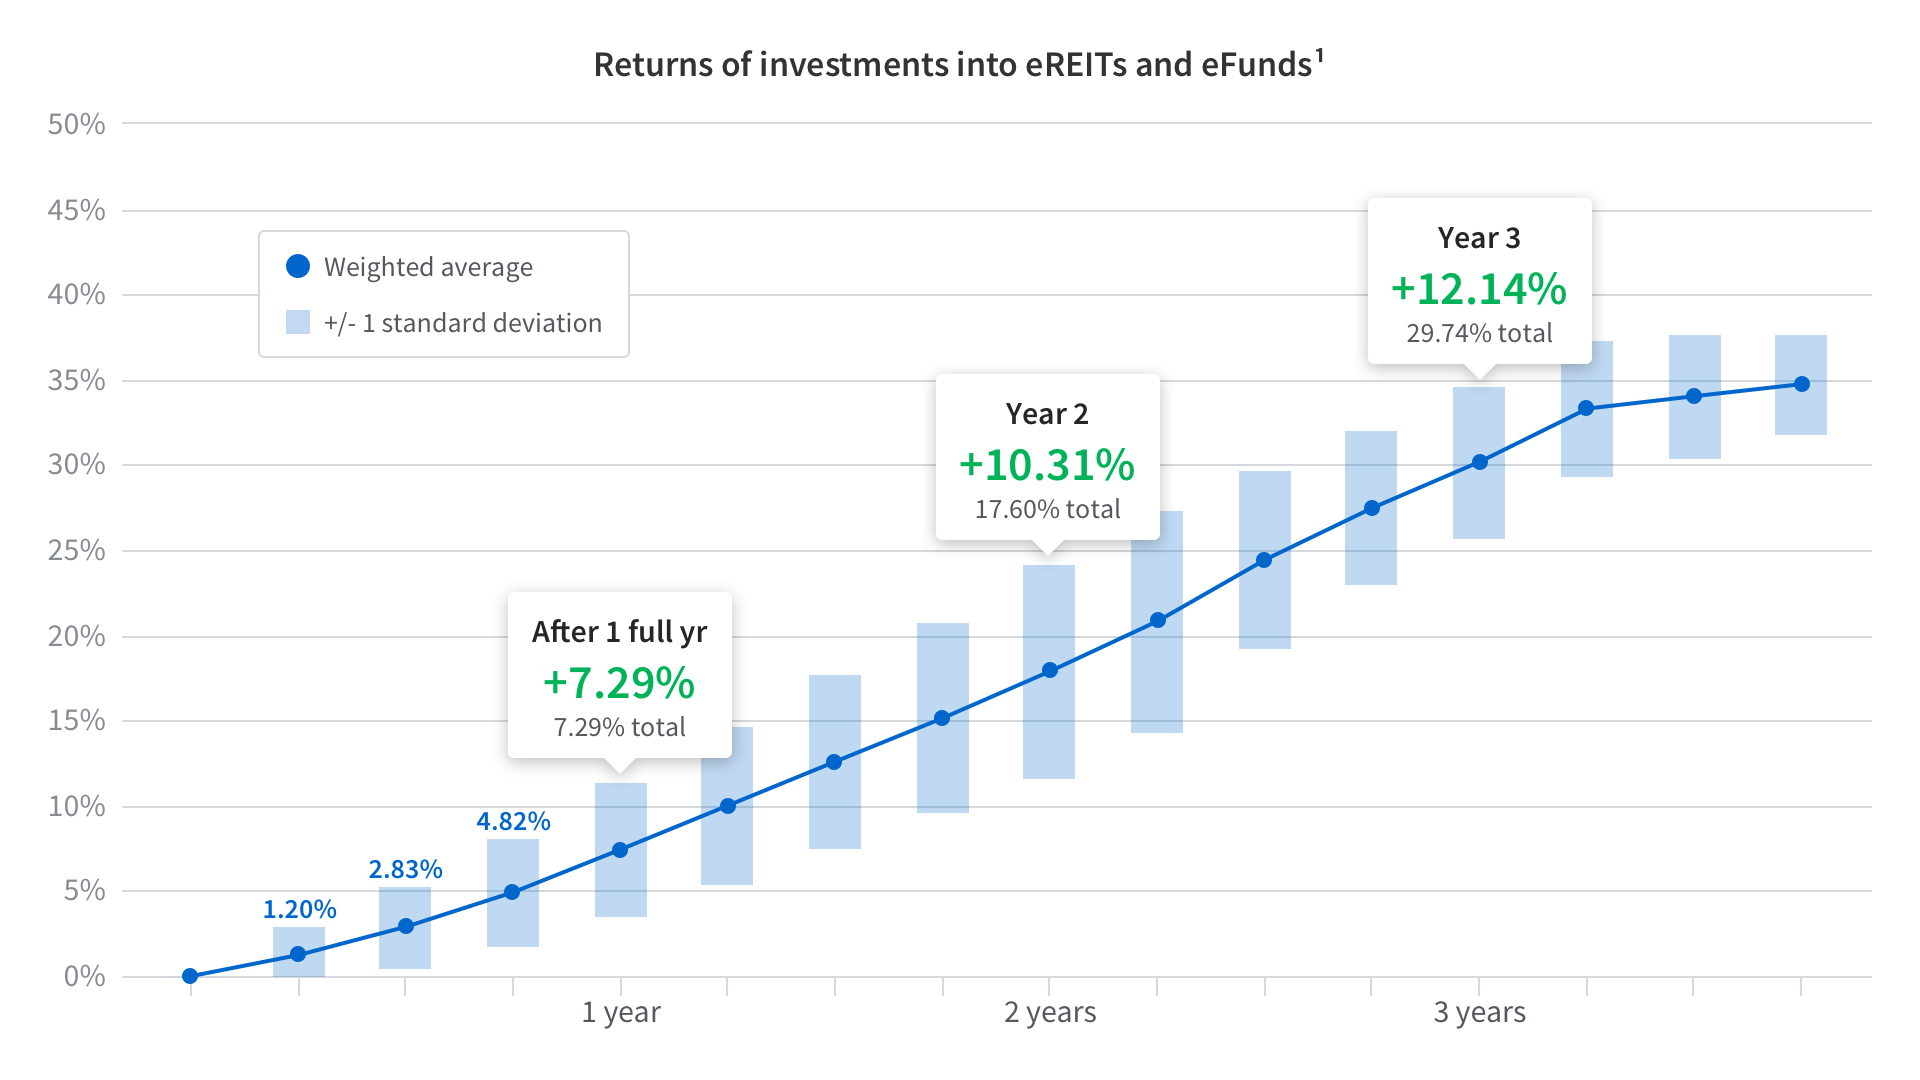 Returns of investments into eREITs and eFunds